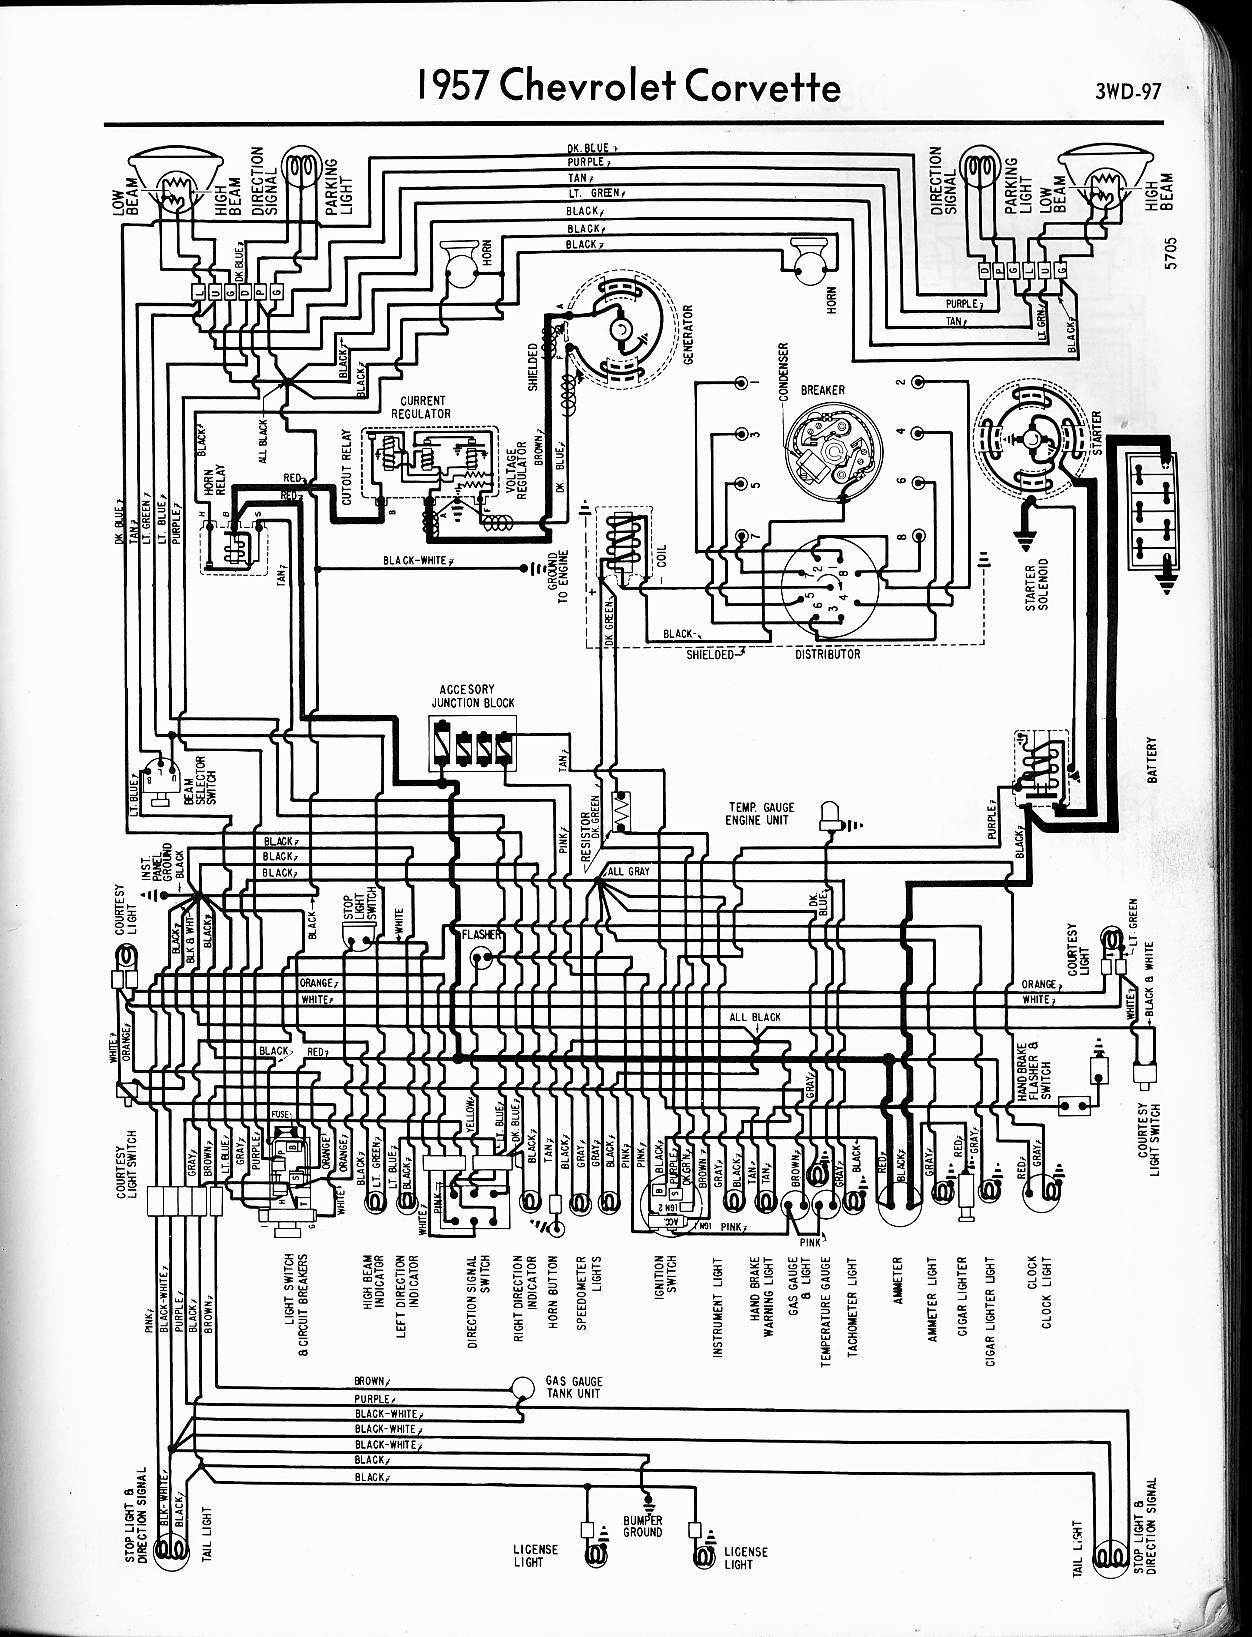 57 chevy distributor wiring new wiring diagrams 1956 chevy distributor wiring diagram